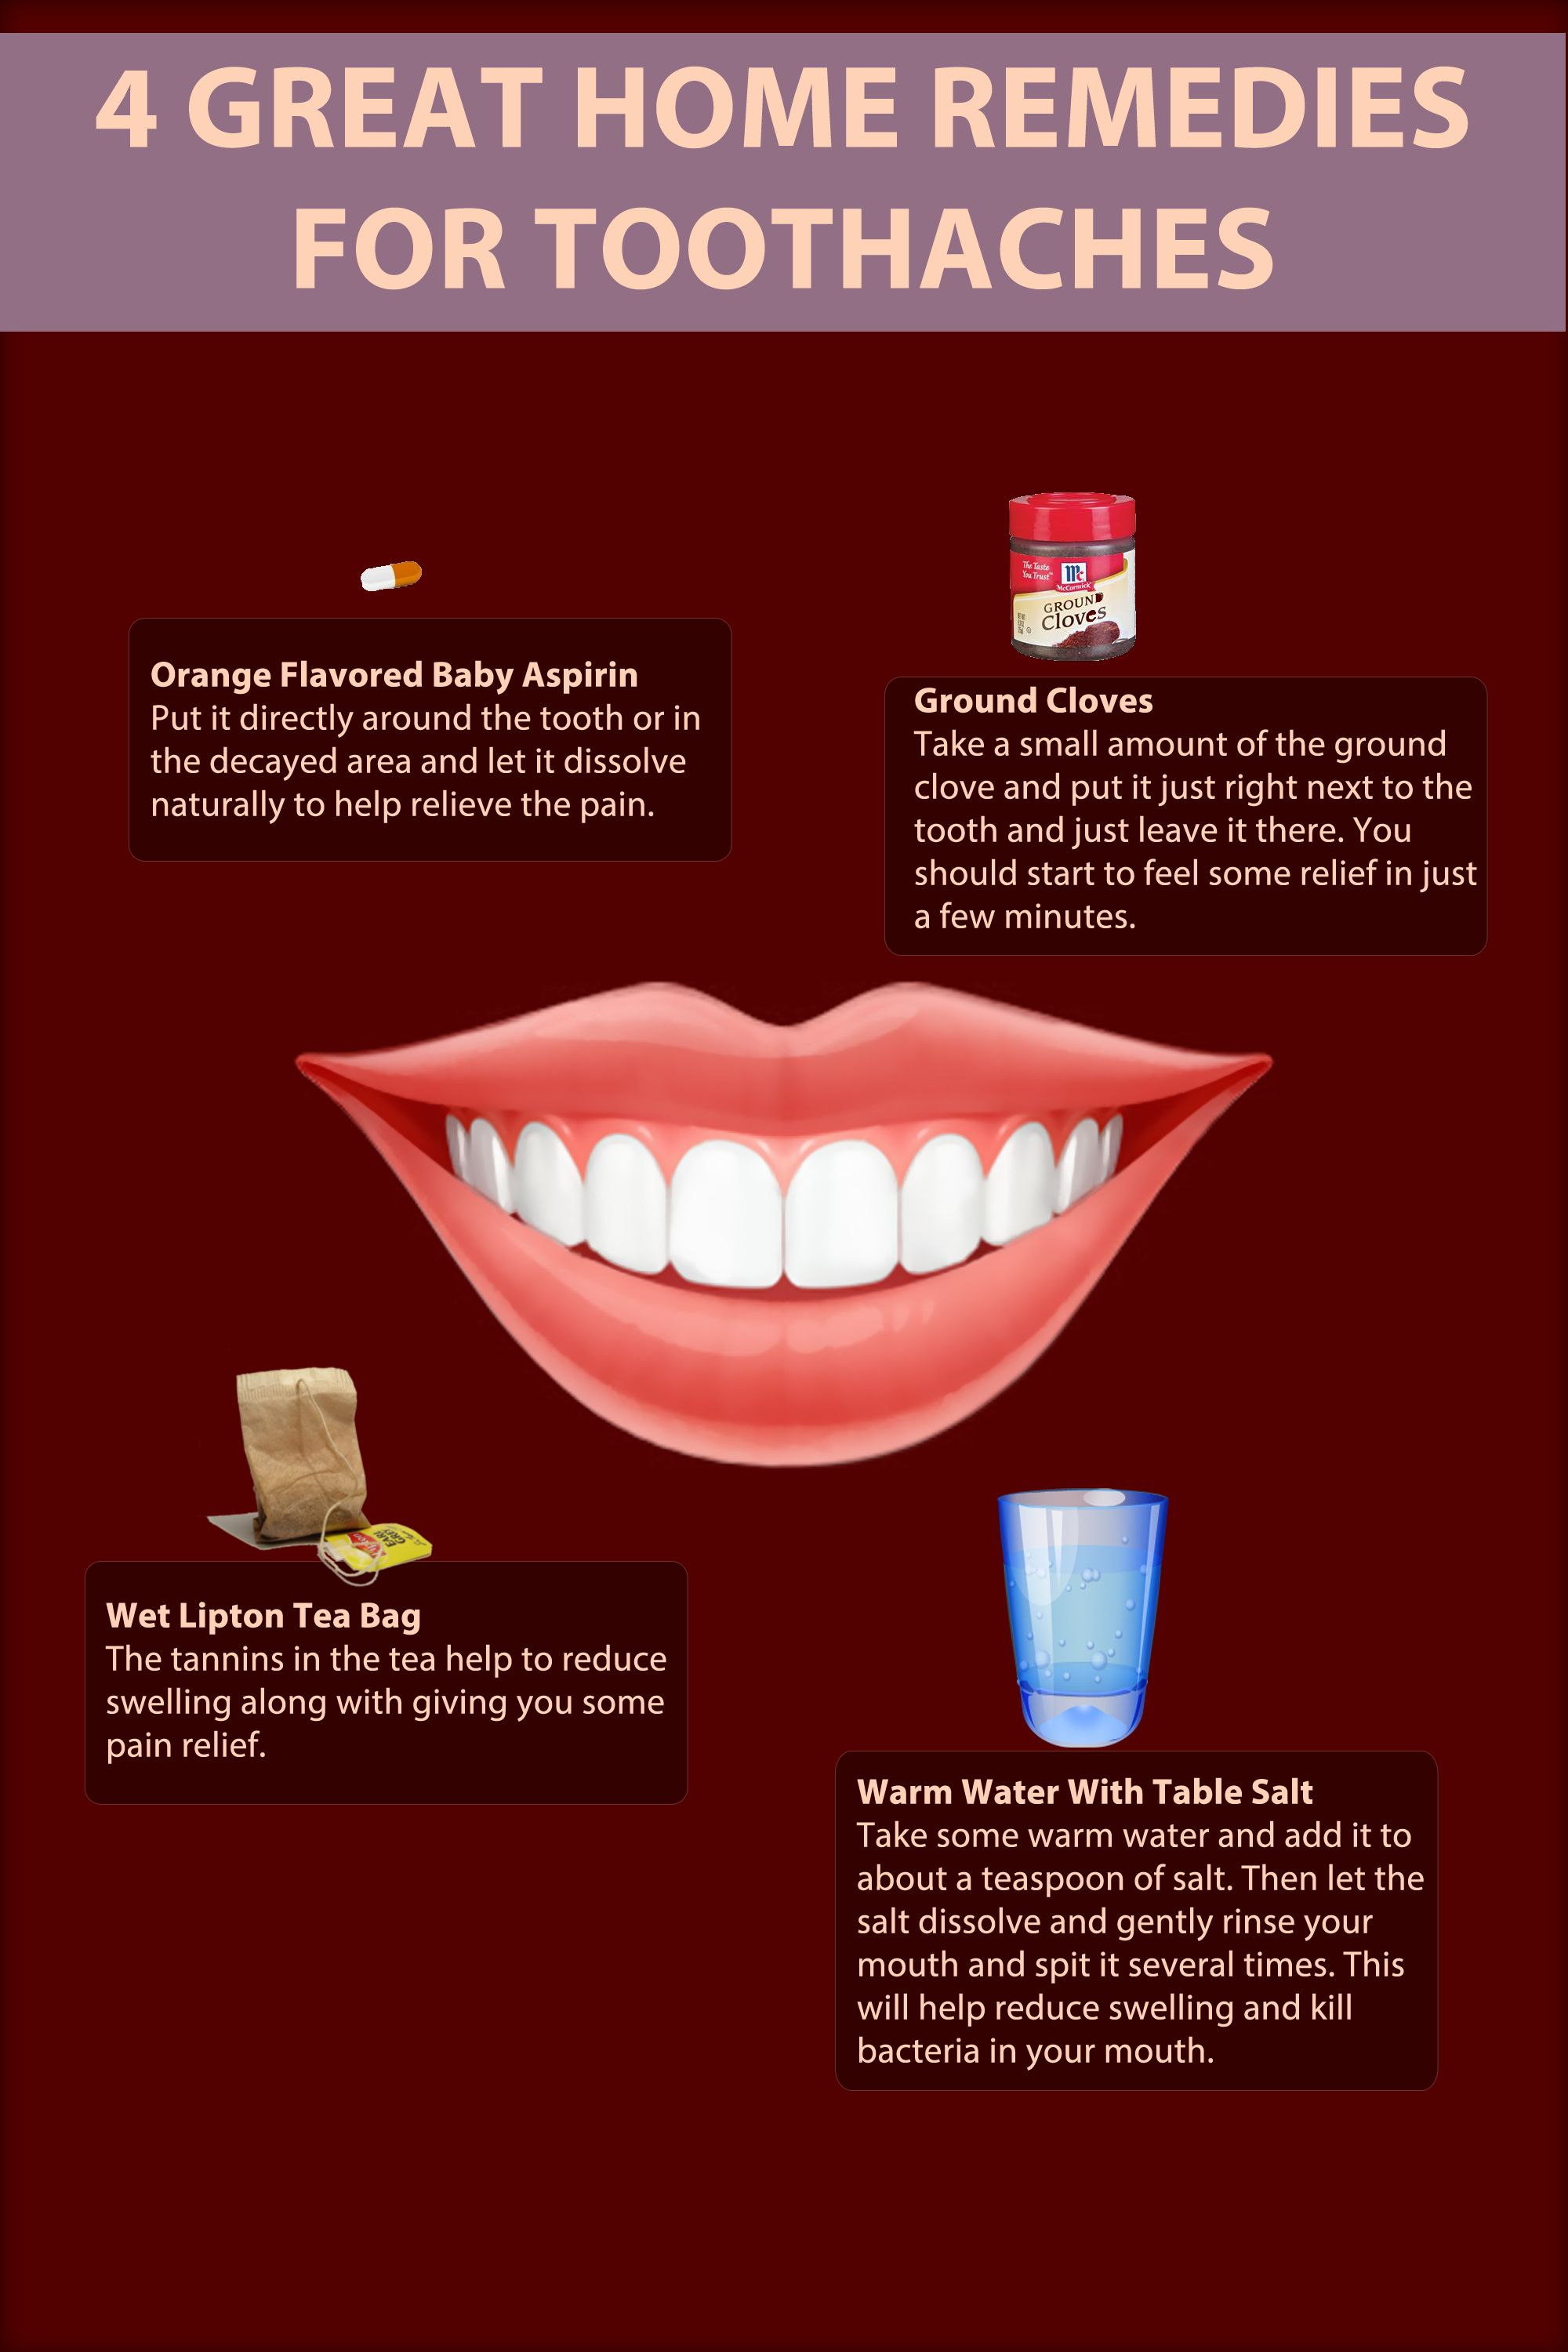 pin by omid farahmand, dmd on dental infographics | pinterest | home